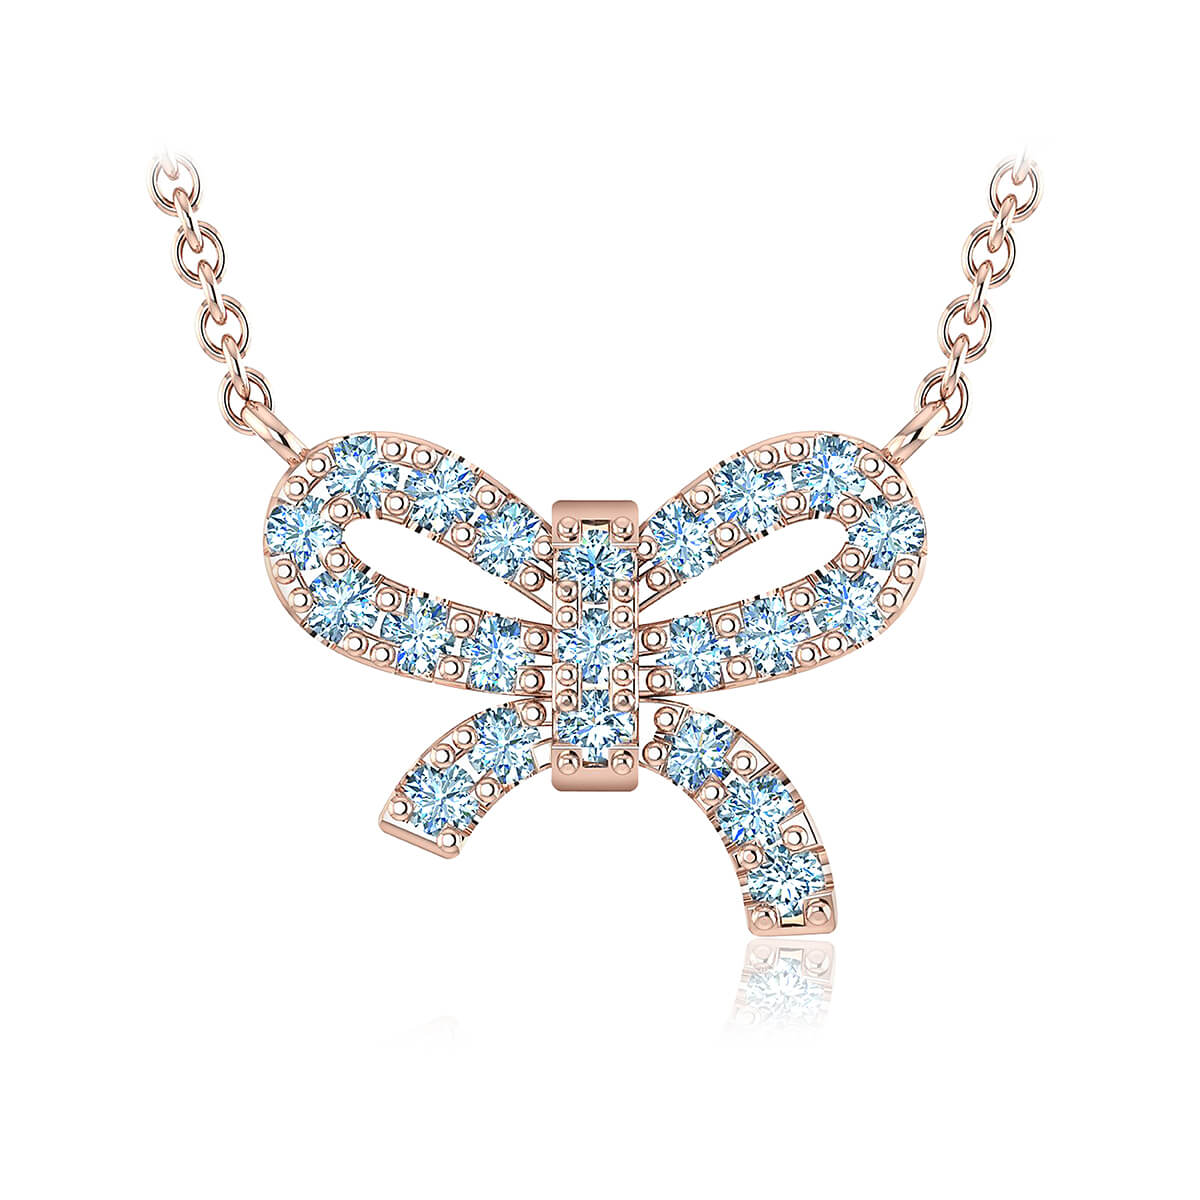 Mon trésor Diamond Necklace (1/6 CT. TW.)